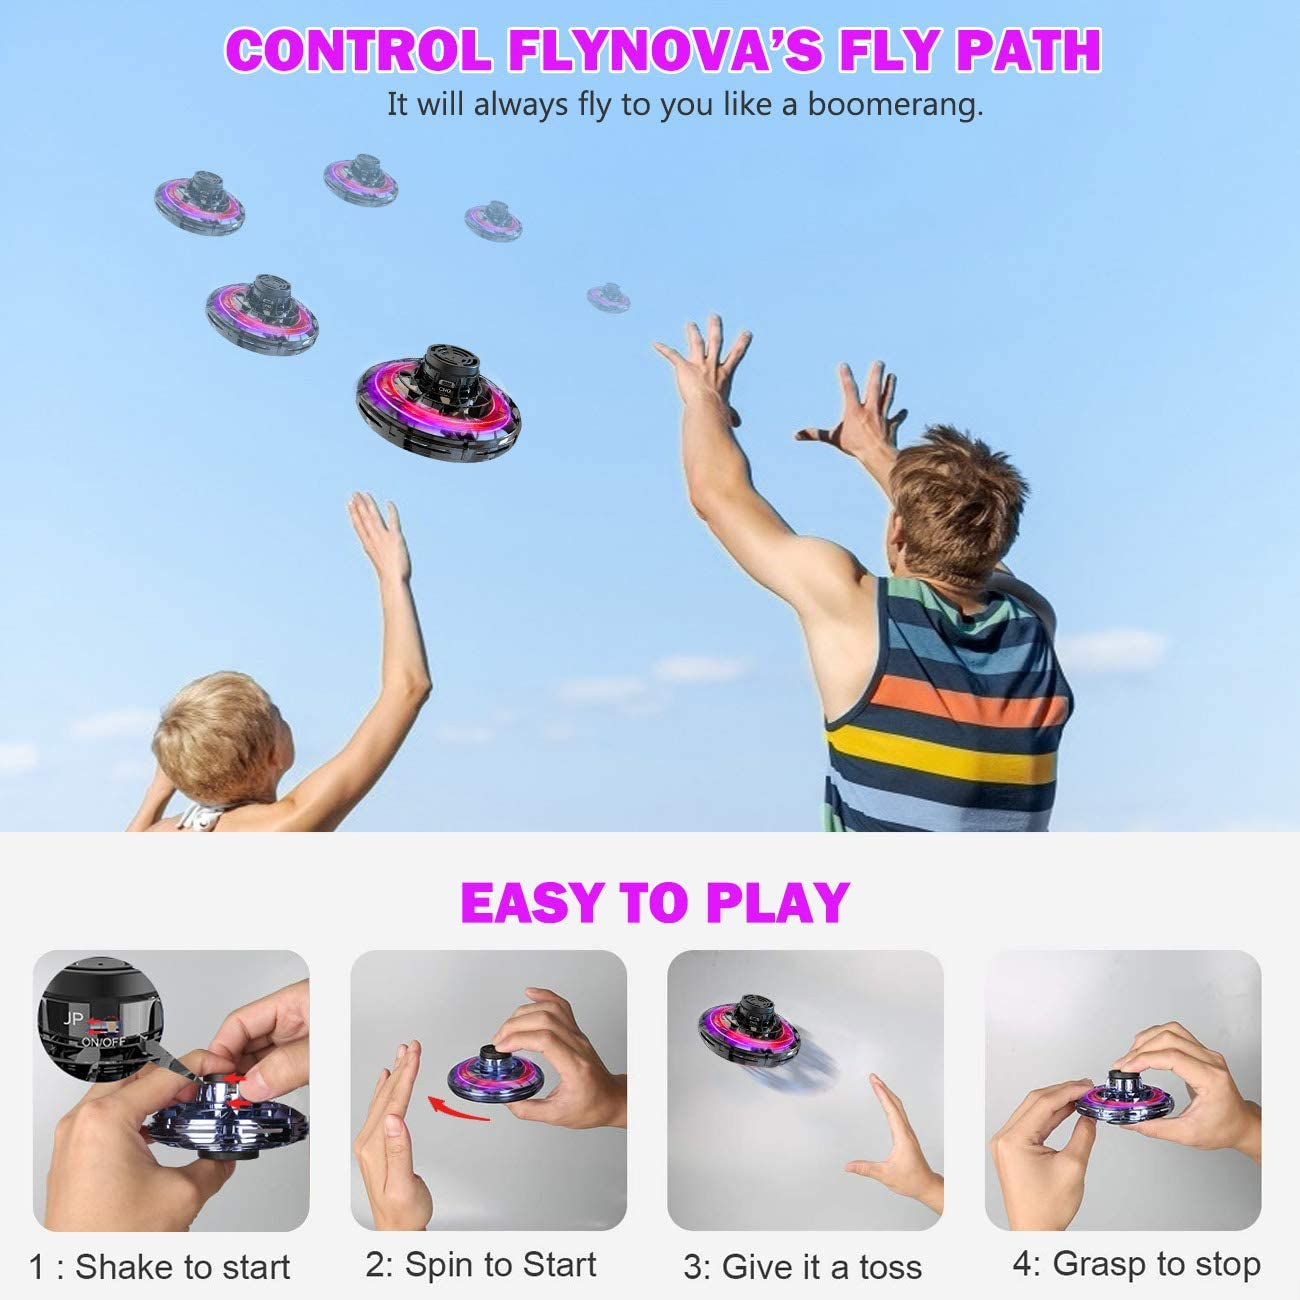 FlyNova Flying Drones Toys Hand Operated Drones for Kids or Adults Stress Relief Interactive Cool Toys Rechargeable Scintillating RGB Light Mini UFO Drones for Indoor Outdoor Games Flying Toy